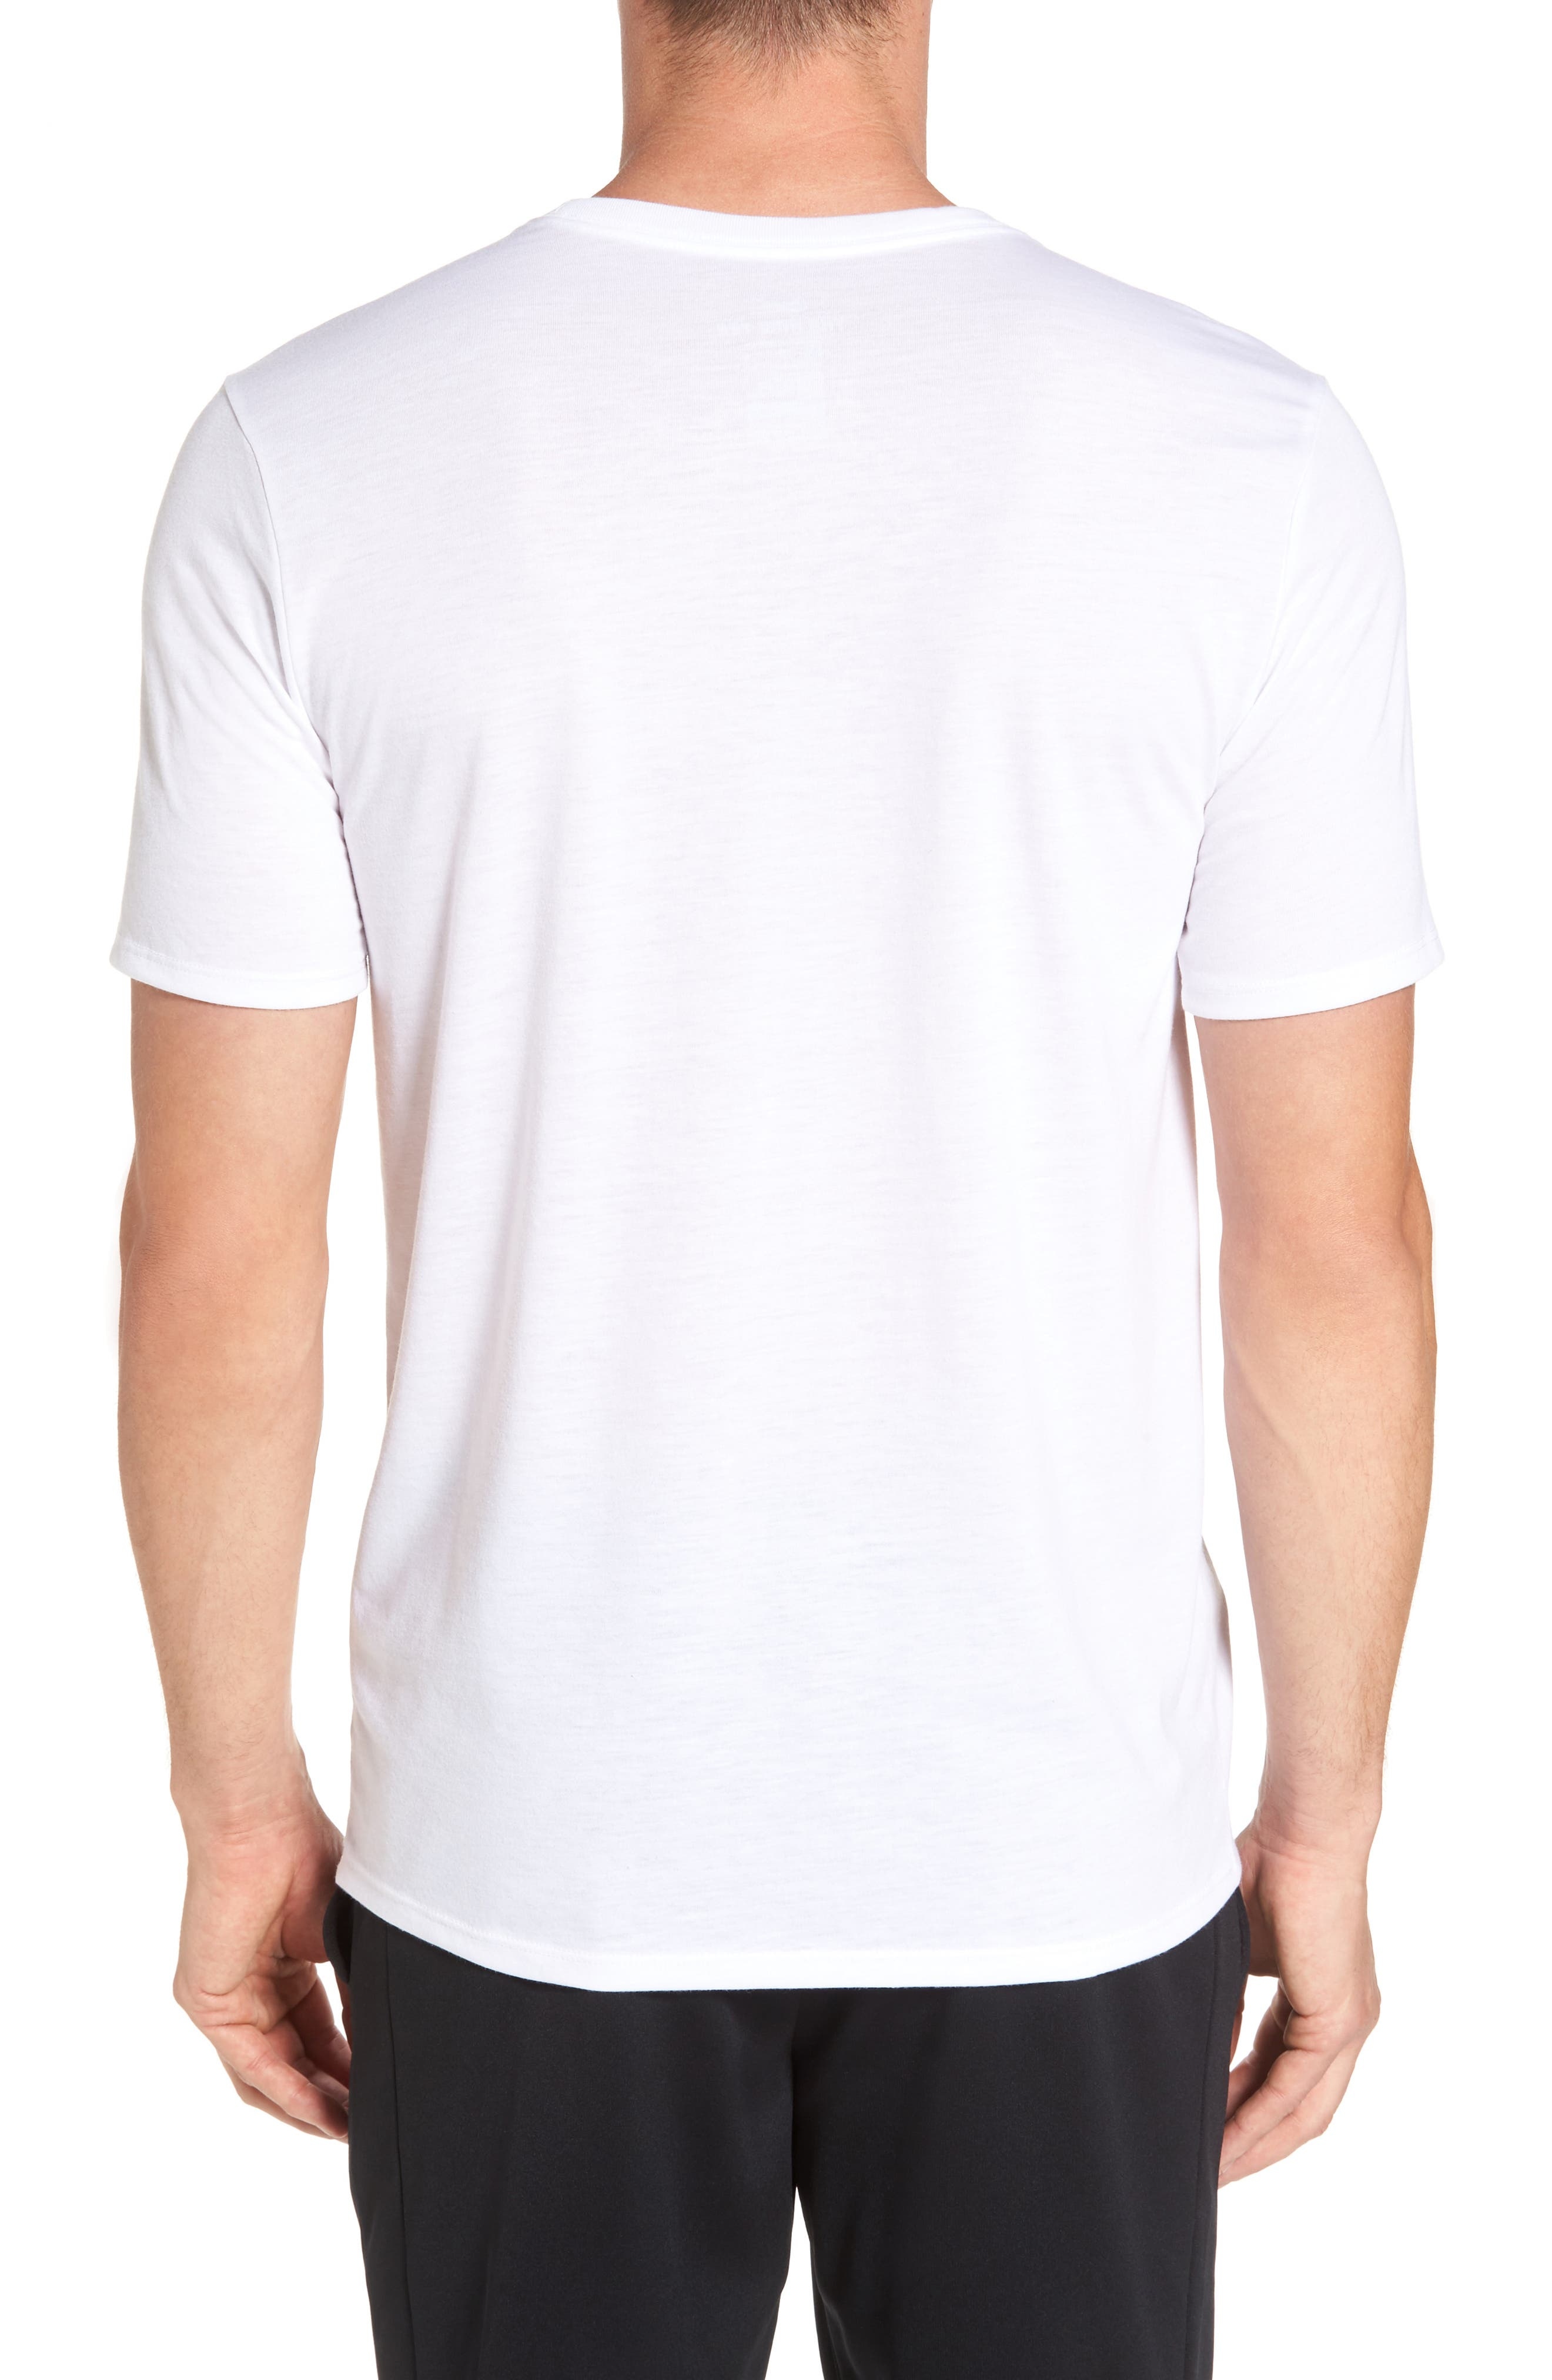 Photo Ball Graphic T-Shirt,                             Alternate thumbnail 2, color,                             White/ White